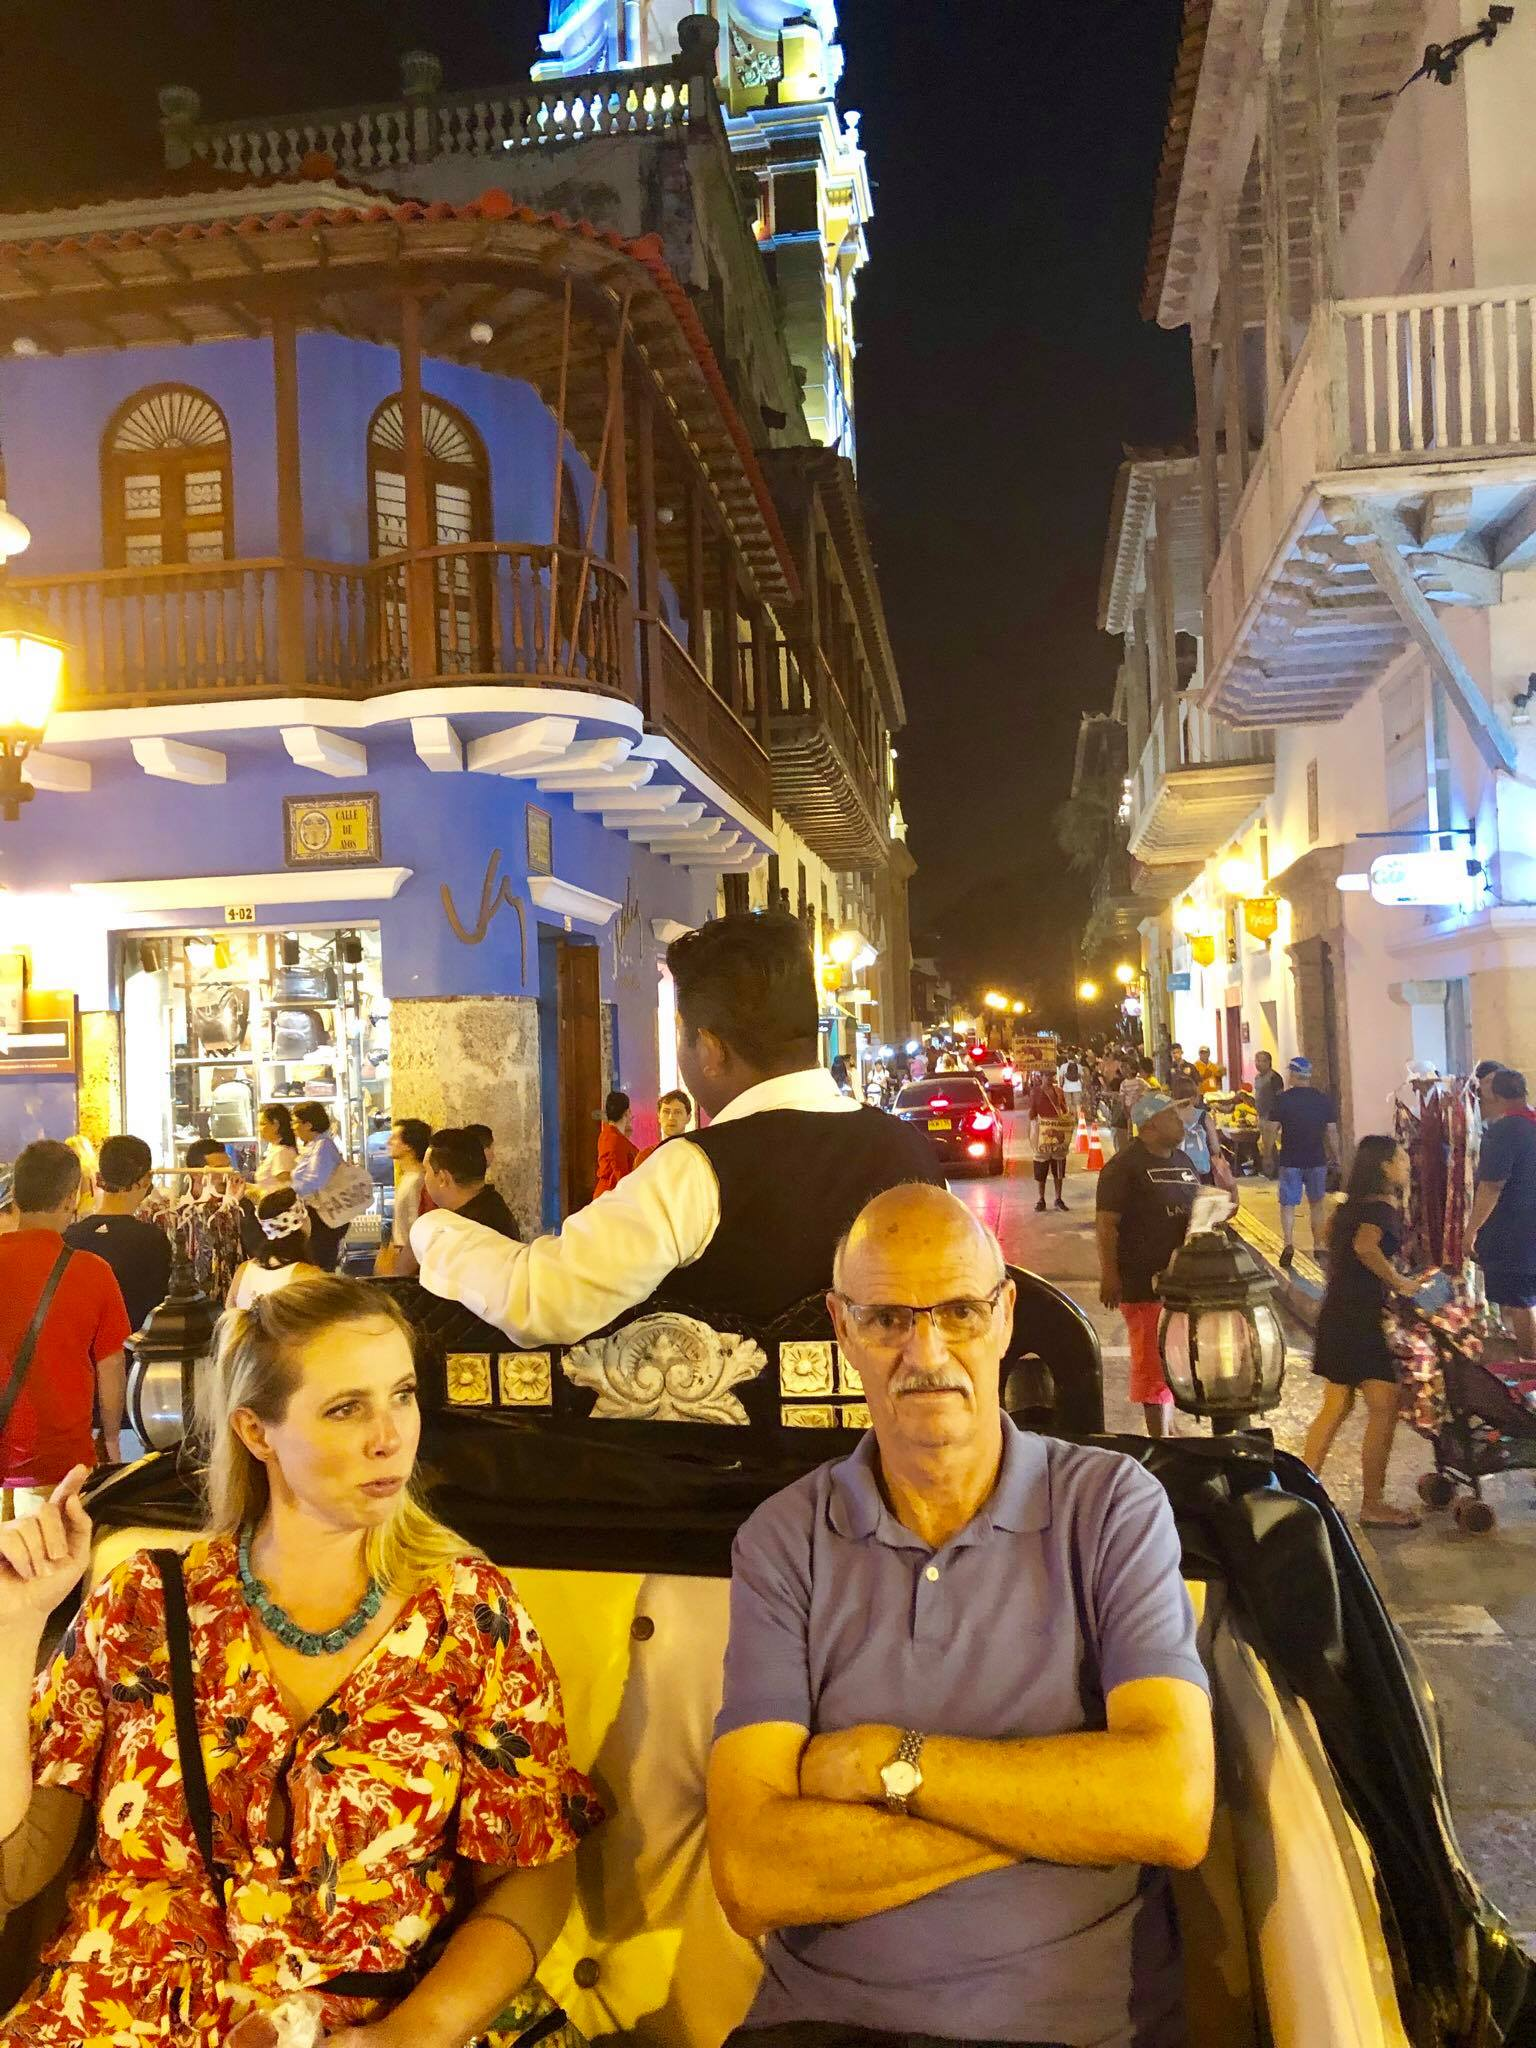 Kach Solo Travels in 2019 I really love Cartagena8.jpg